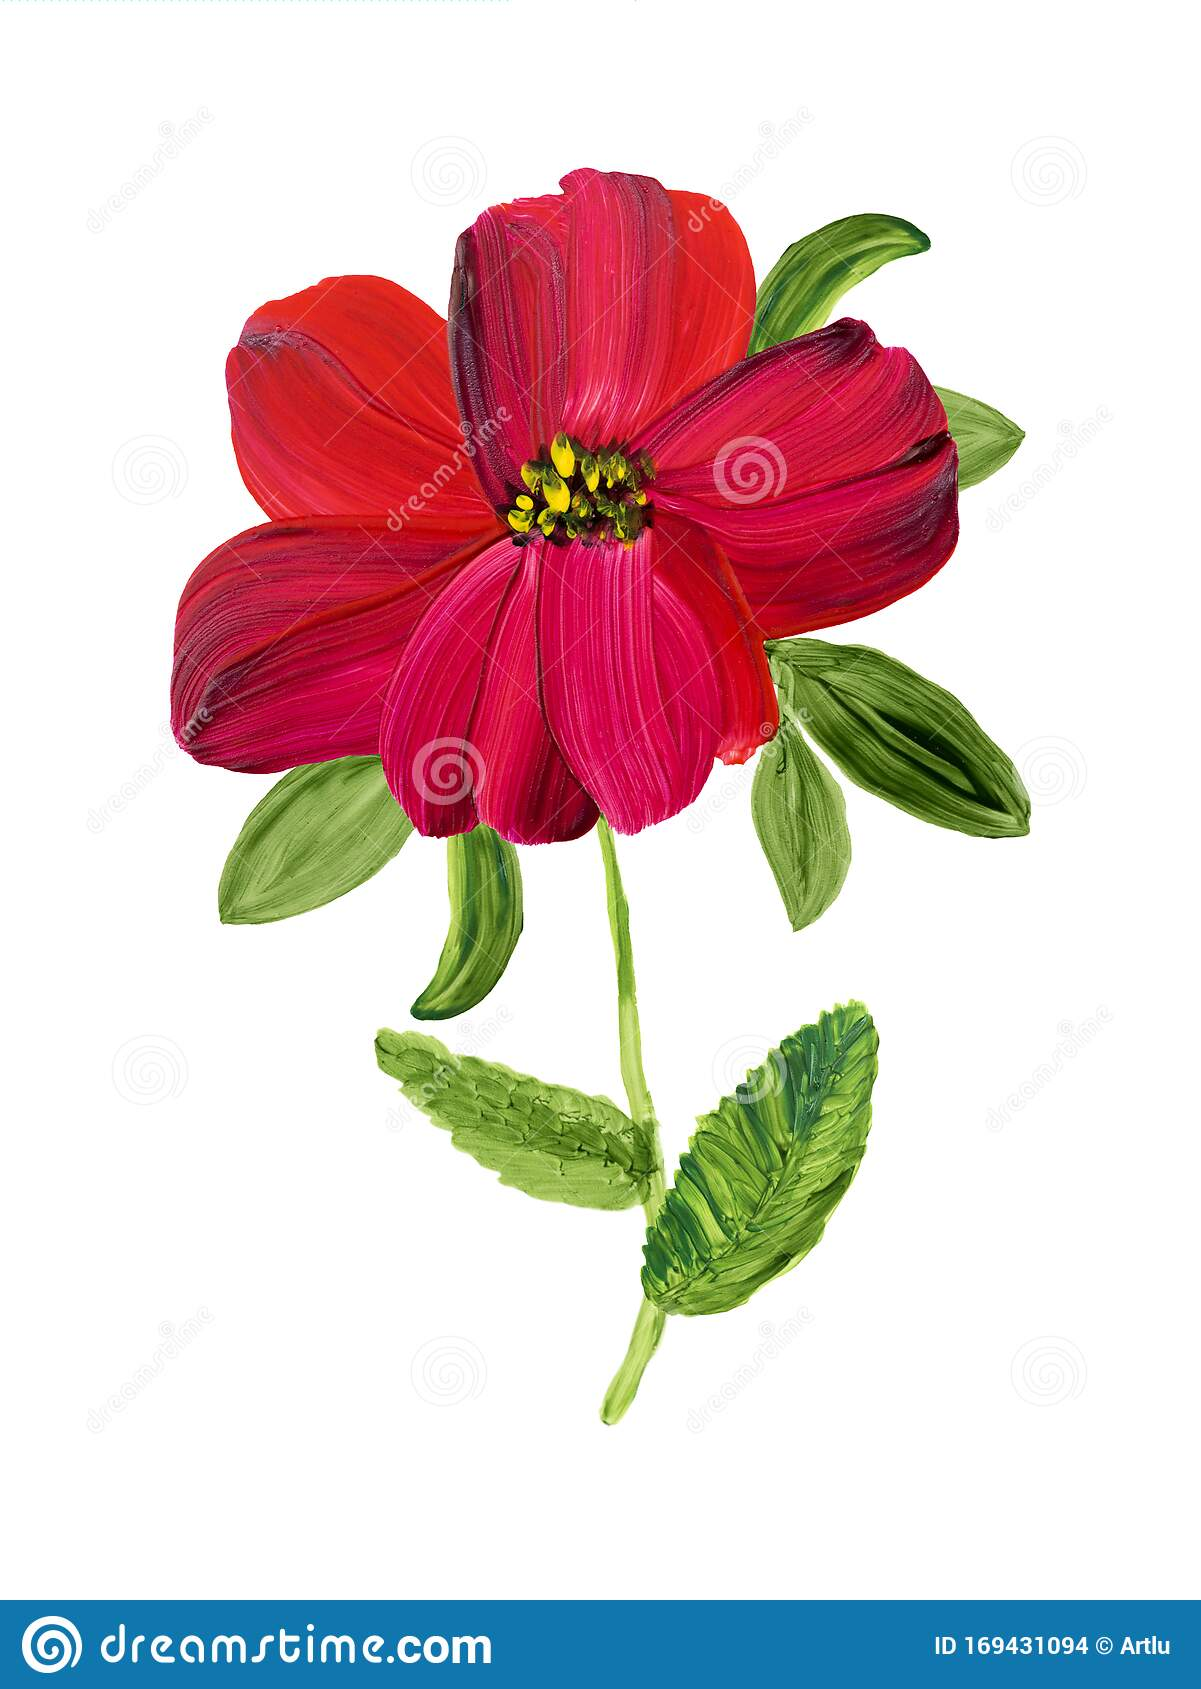 Abstract Red Flower Painted In Acrylic Stock Illustration Illustration Of Backdrop Acrylic 169431094